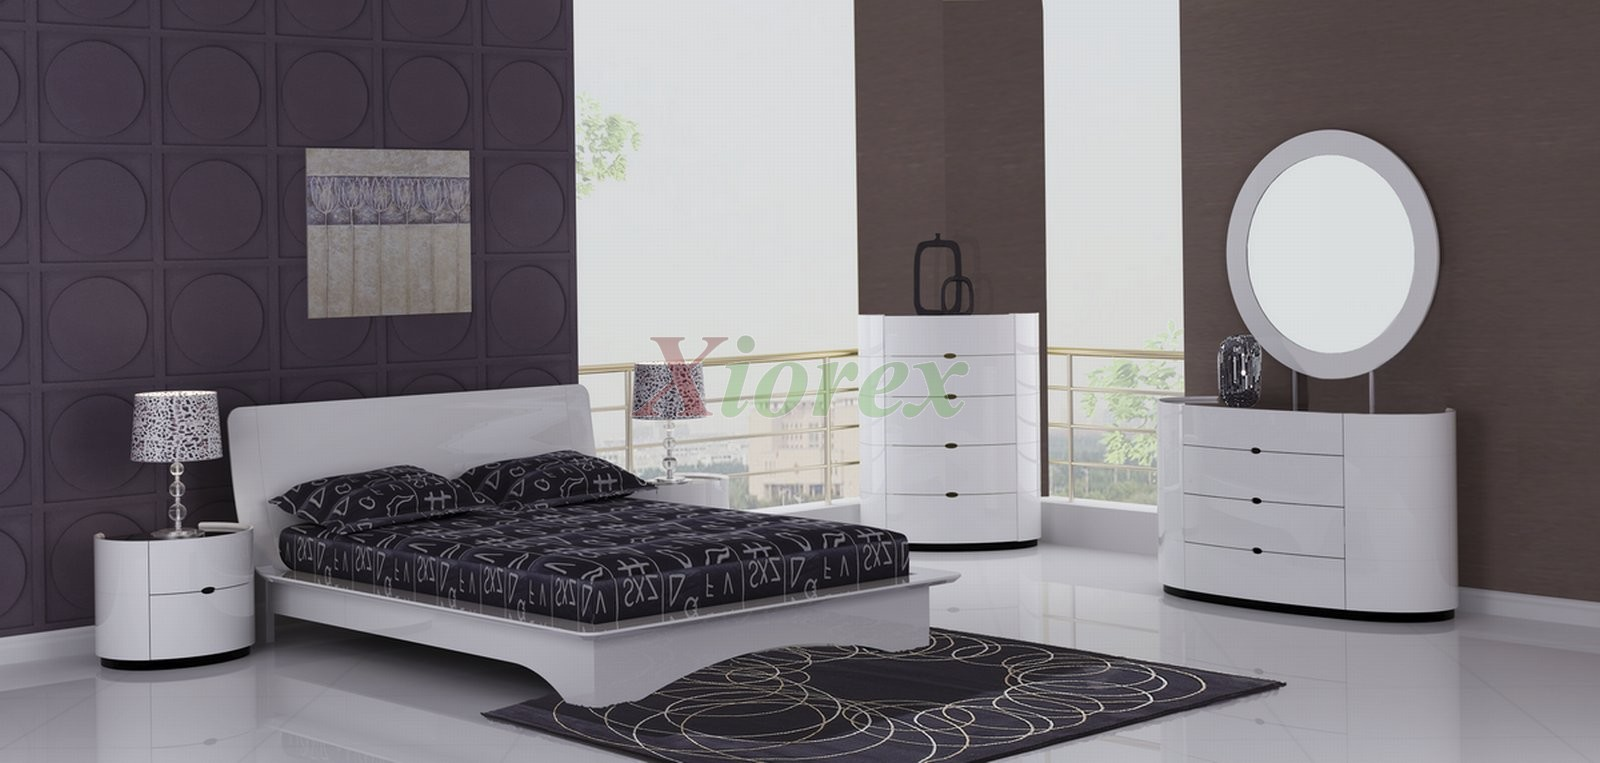 Eri all white modern bedroom furniture sets canada xiorex for White bedroom furniture set